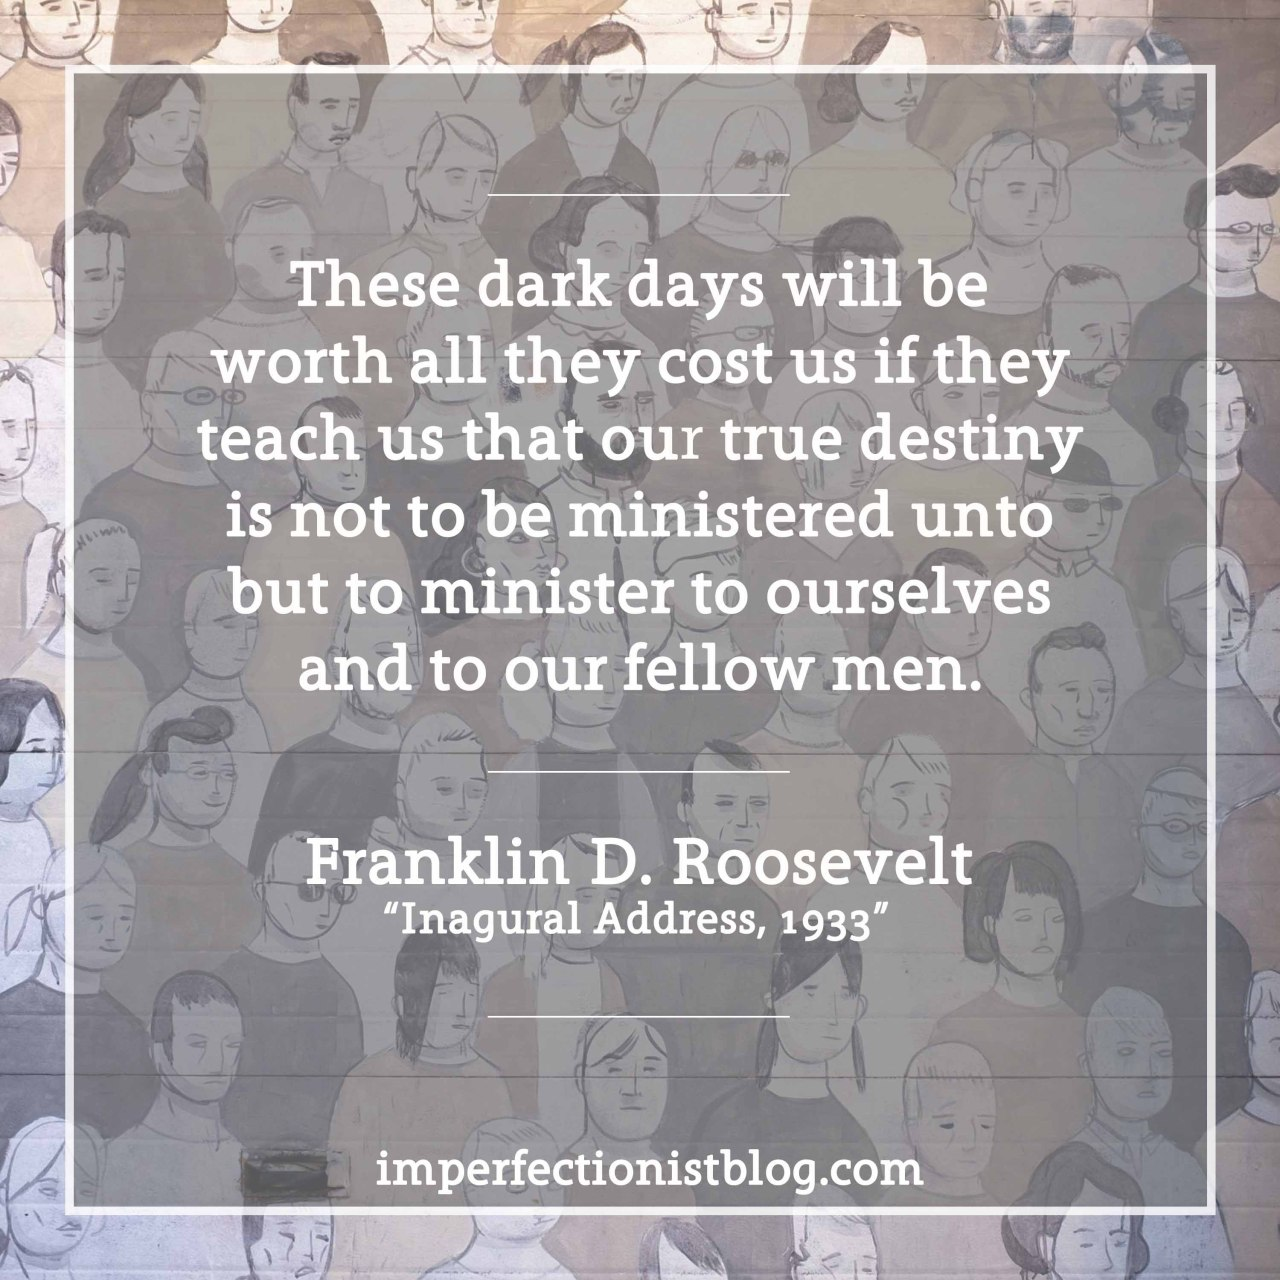 "#329 - ""These dark days will be worth all they cost us if they teach us that our true destiny is not to be ministered unto but to minister to ourselves and to our fellow men."" -Franklin D. Roosevelt (Inaugural Address, March 4, 1933)http://imperfectionistblog.com/2017/01/six-lessons-from-franklin-d-roosevelts-first-inaugural-address/"